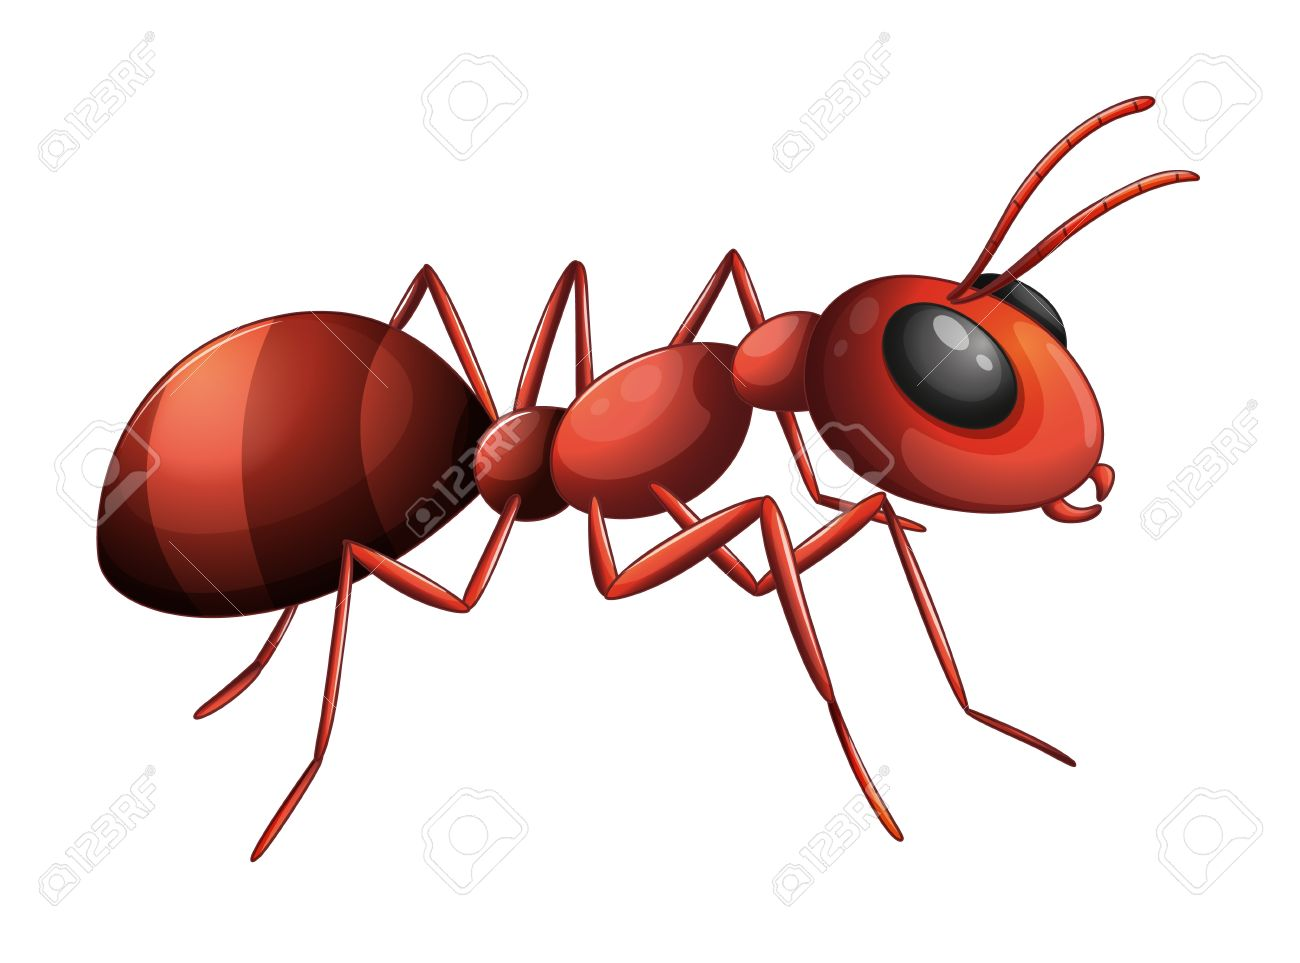 Ant Images Stock Pictures Royalty Free Ant Photos And Stock